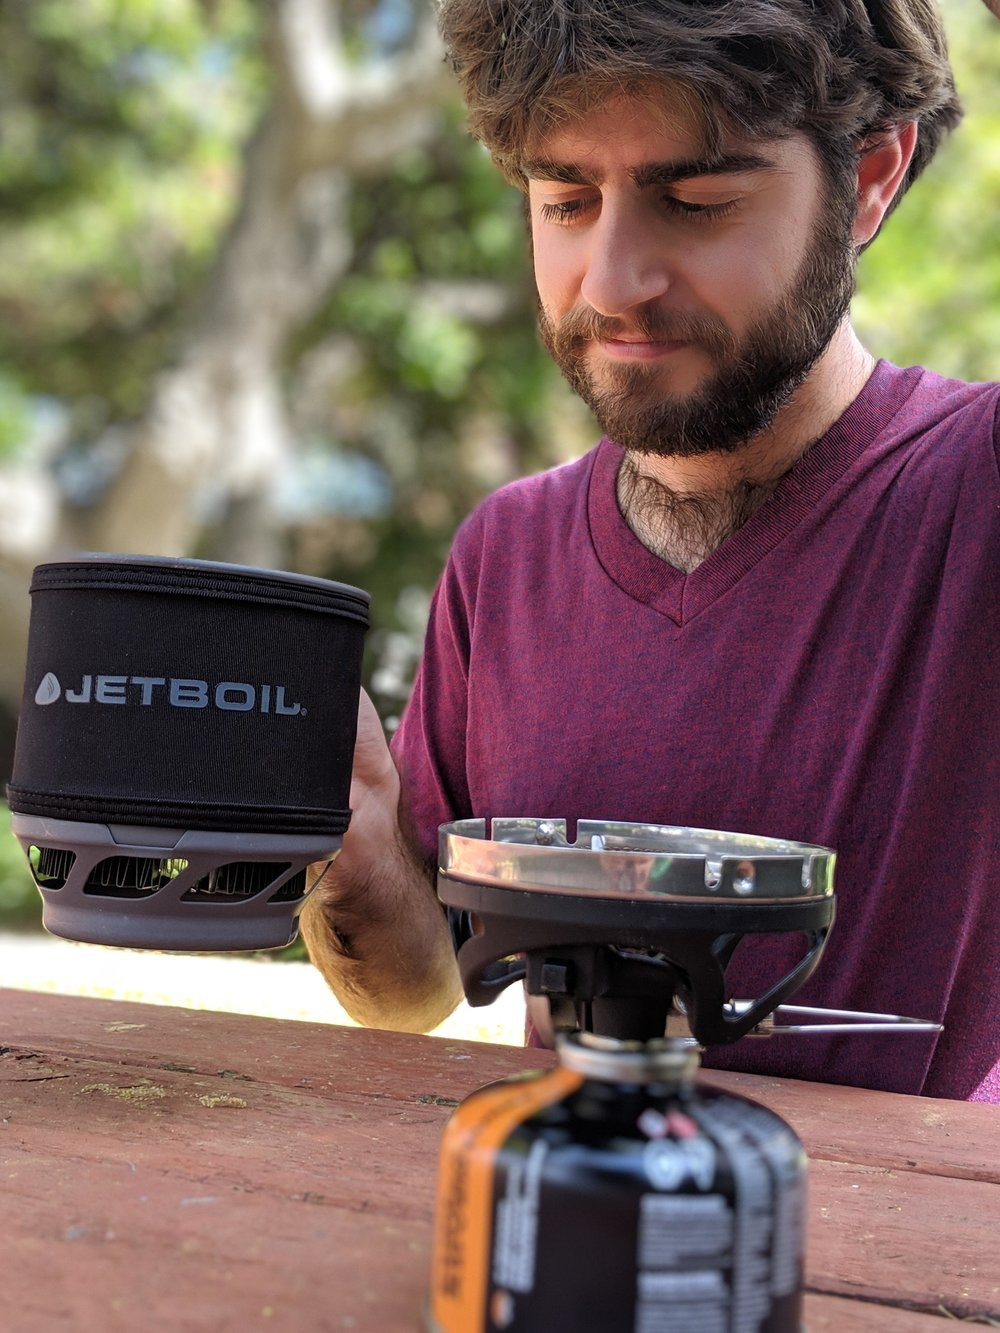 The JetBoil MiniMo comes with full handles and a squat pot that fits into backpacks better than most integrated stoves.   Photo courtesy Liz Thomas.